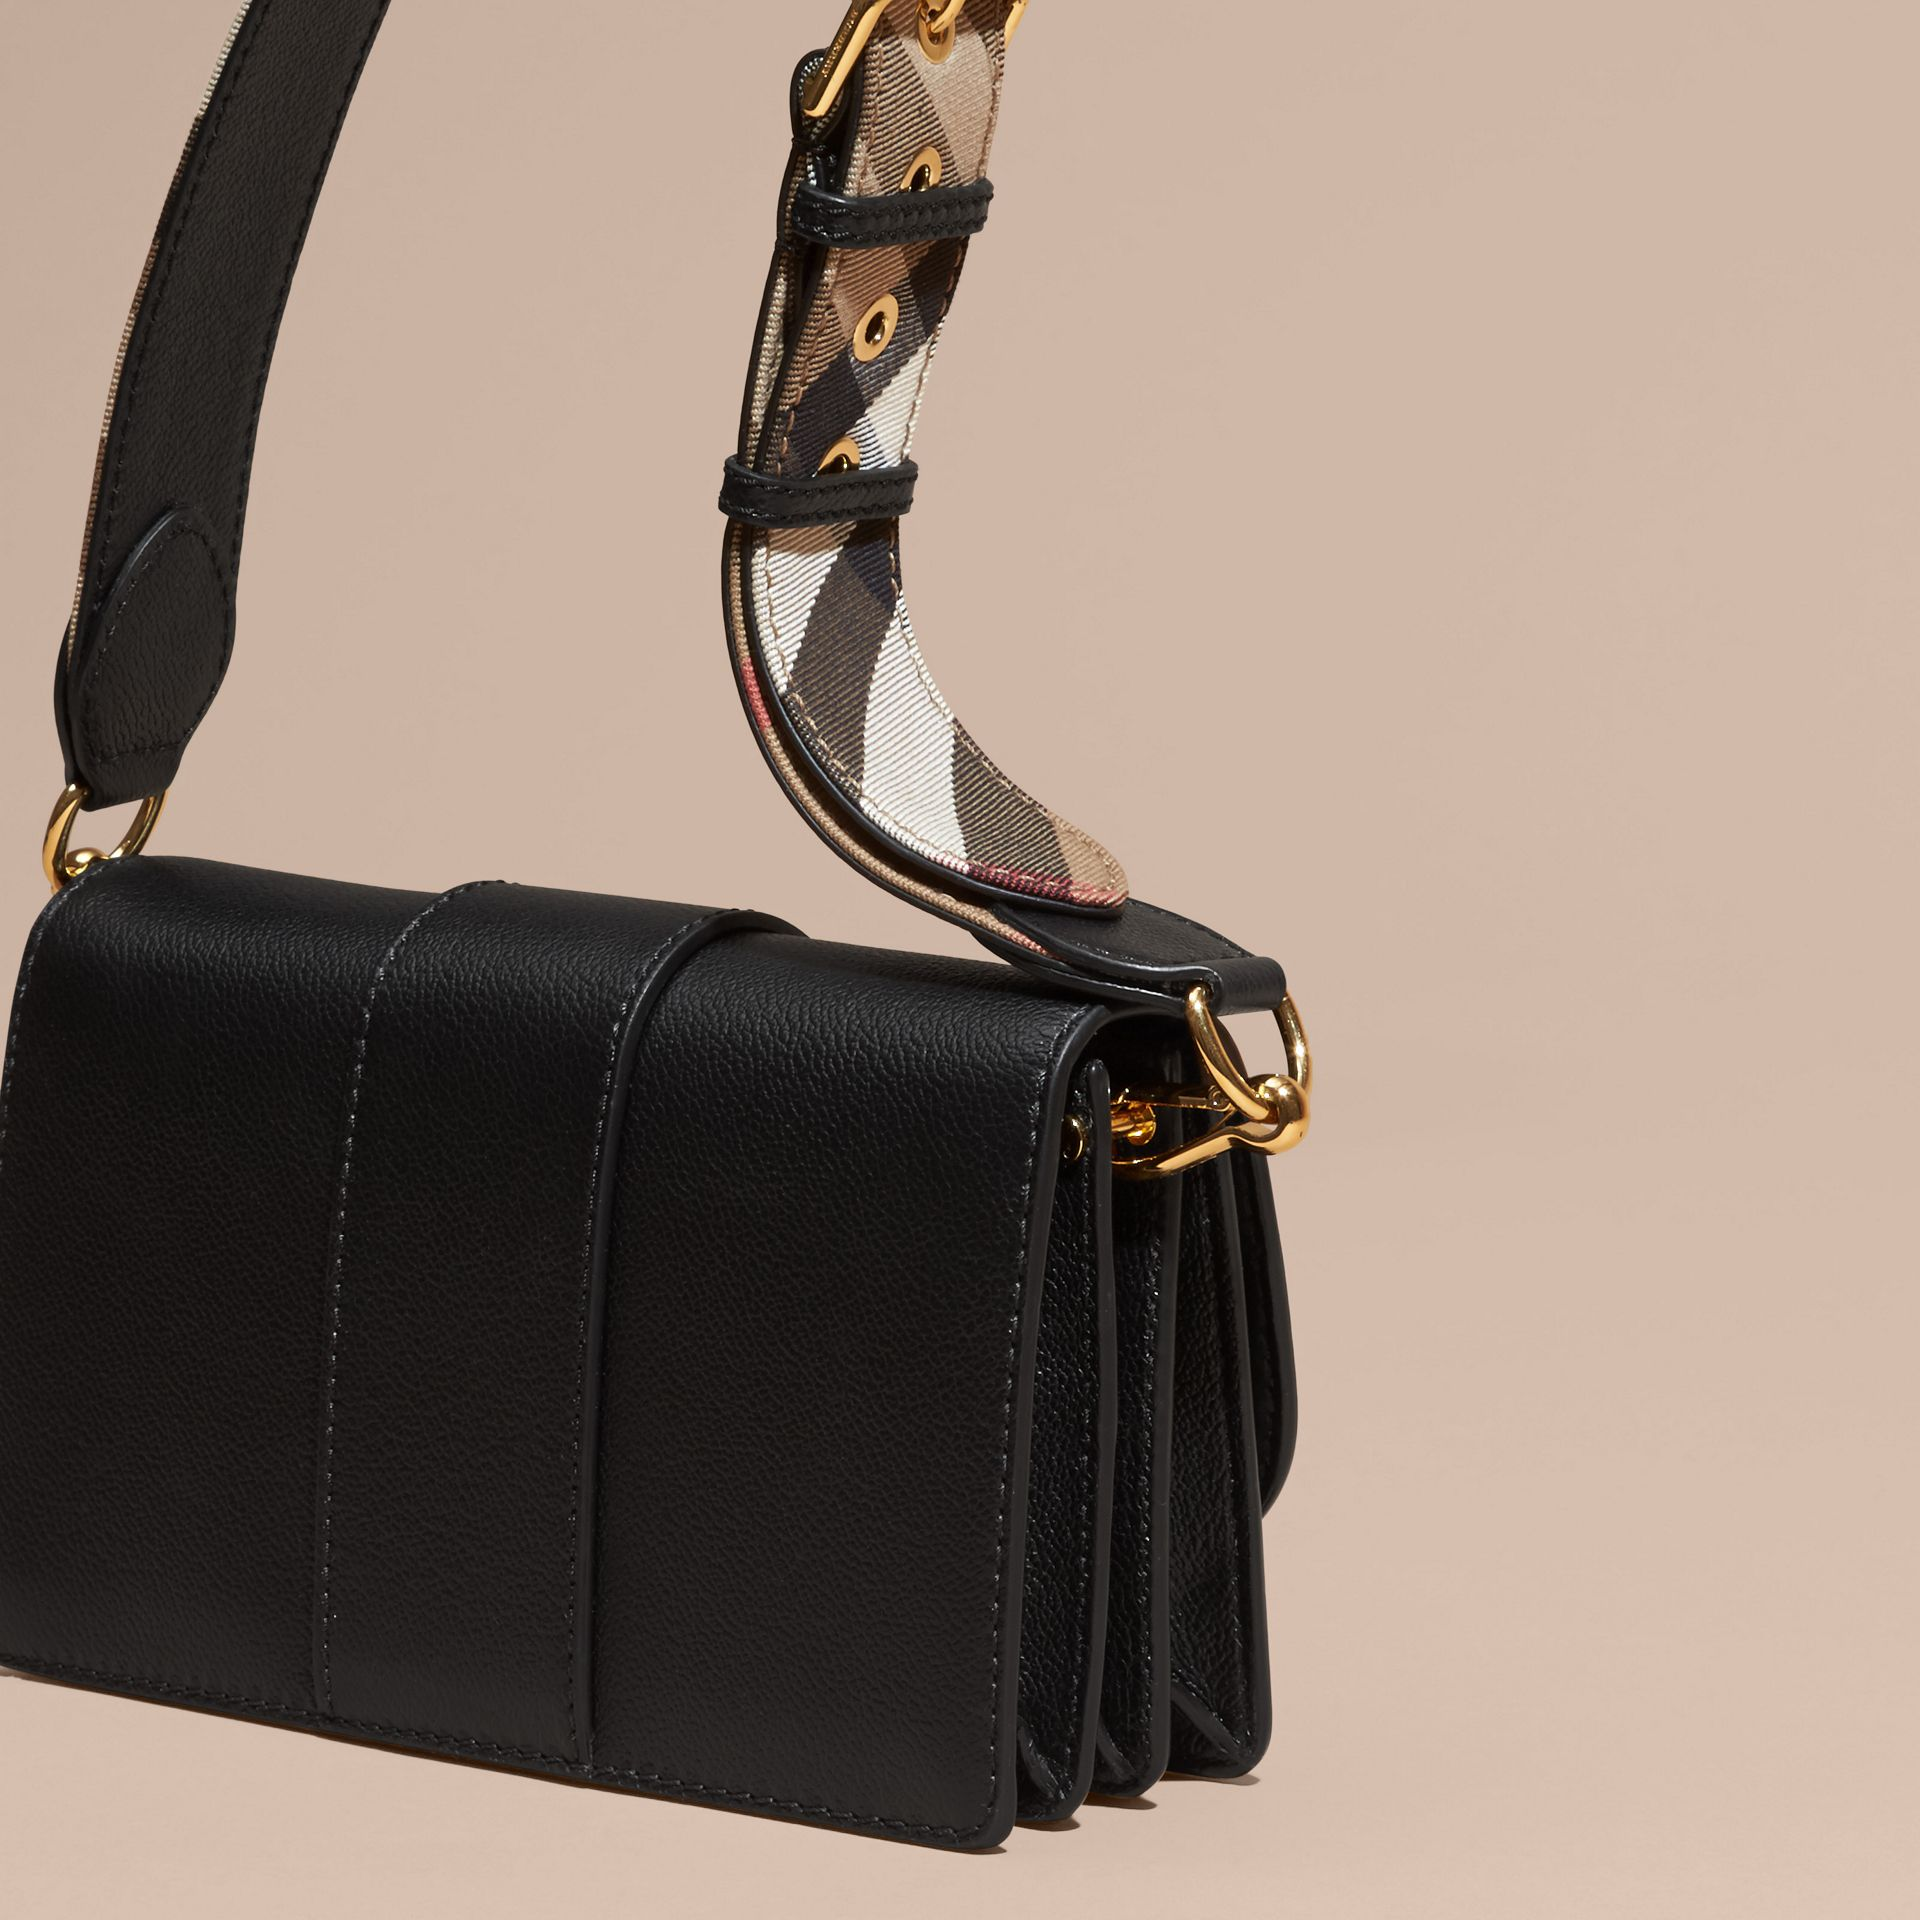 Noir Petit sac The Buckle en cuir - photo de la galerie 5